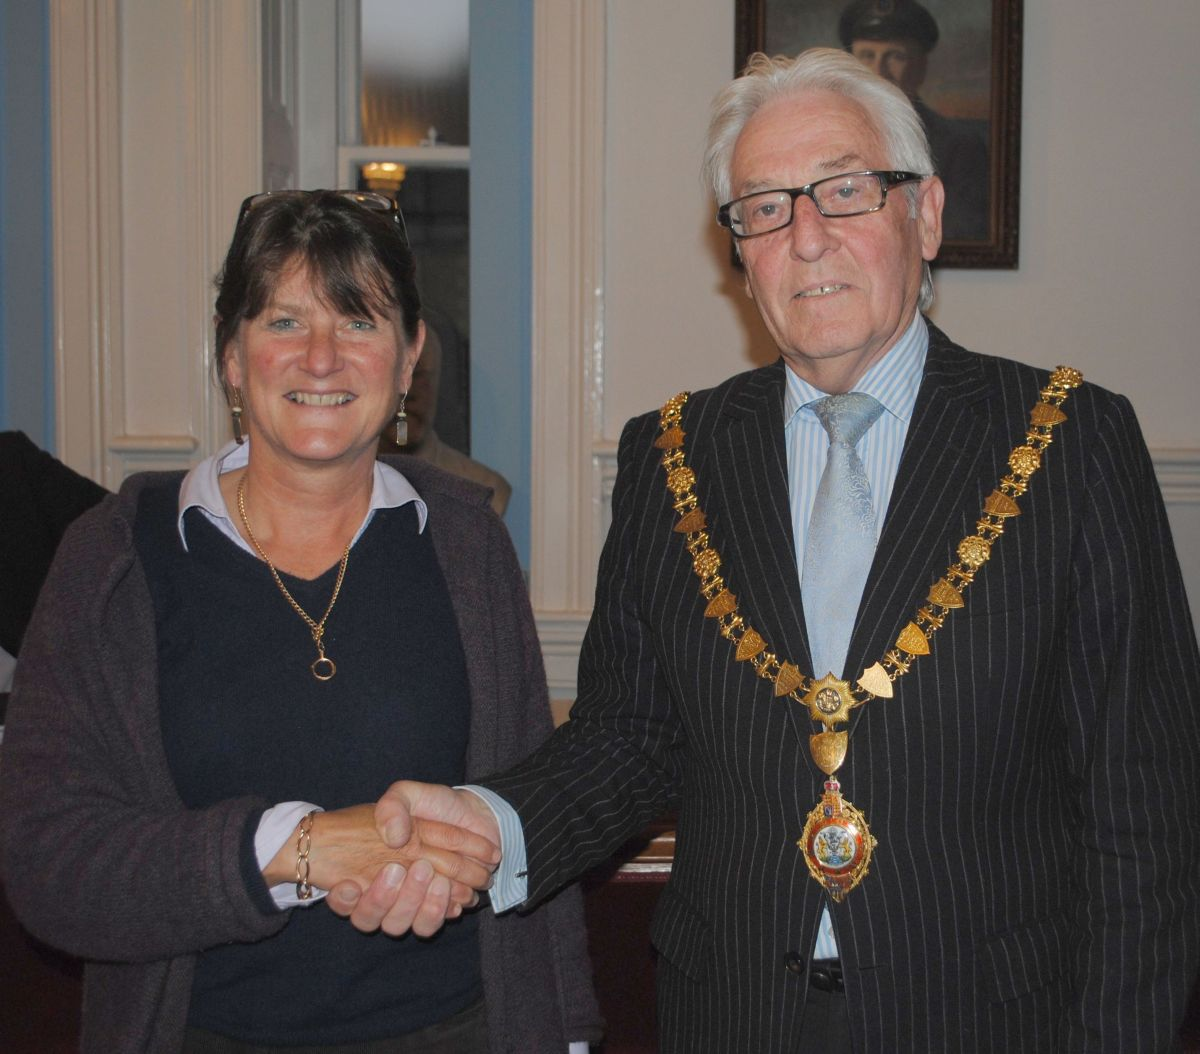 New director Henrietta Boex is welcomed by Falmouth mayor Geoffrey Evans